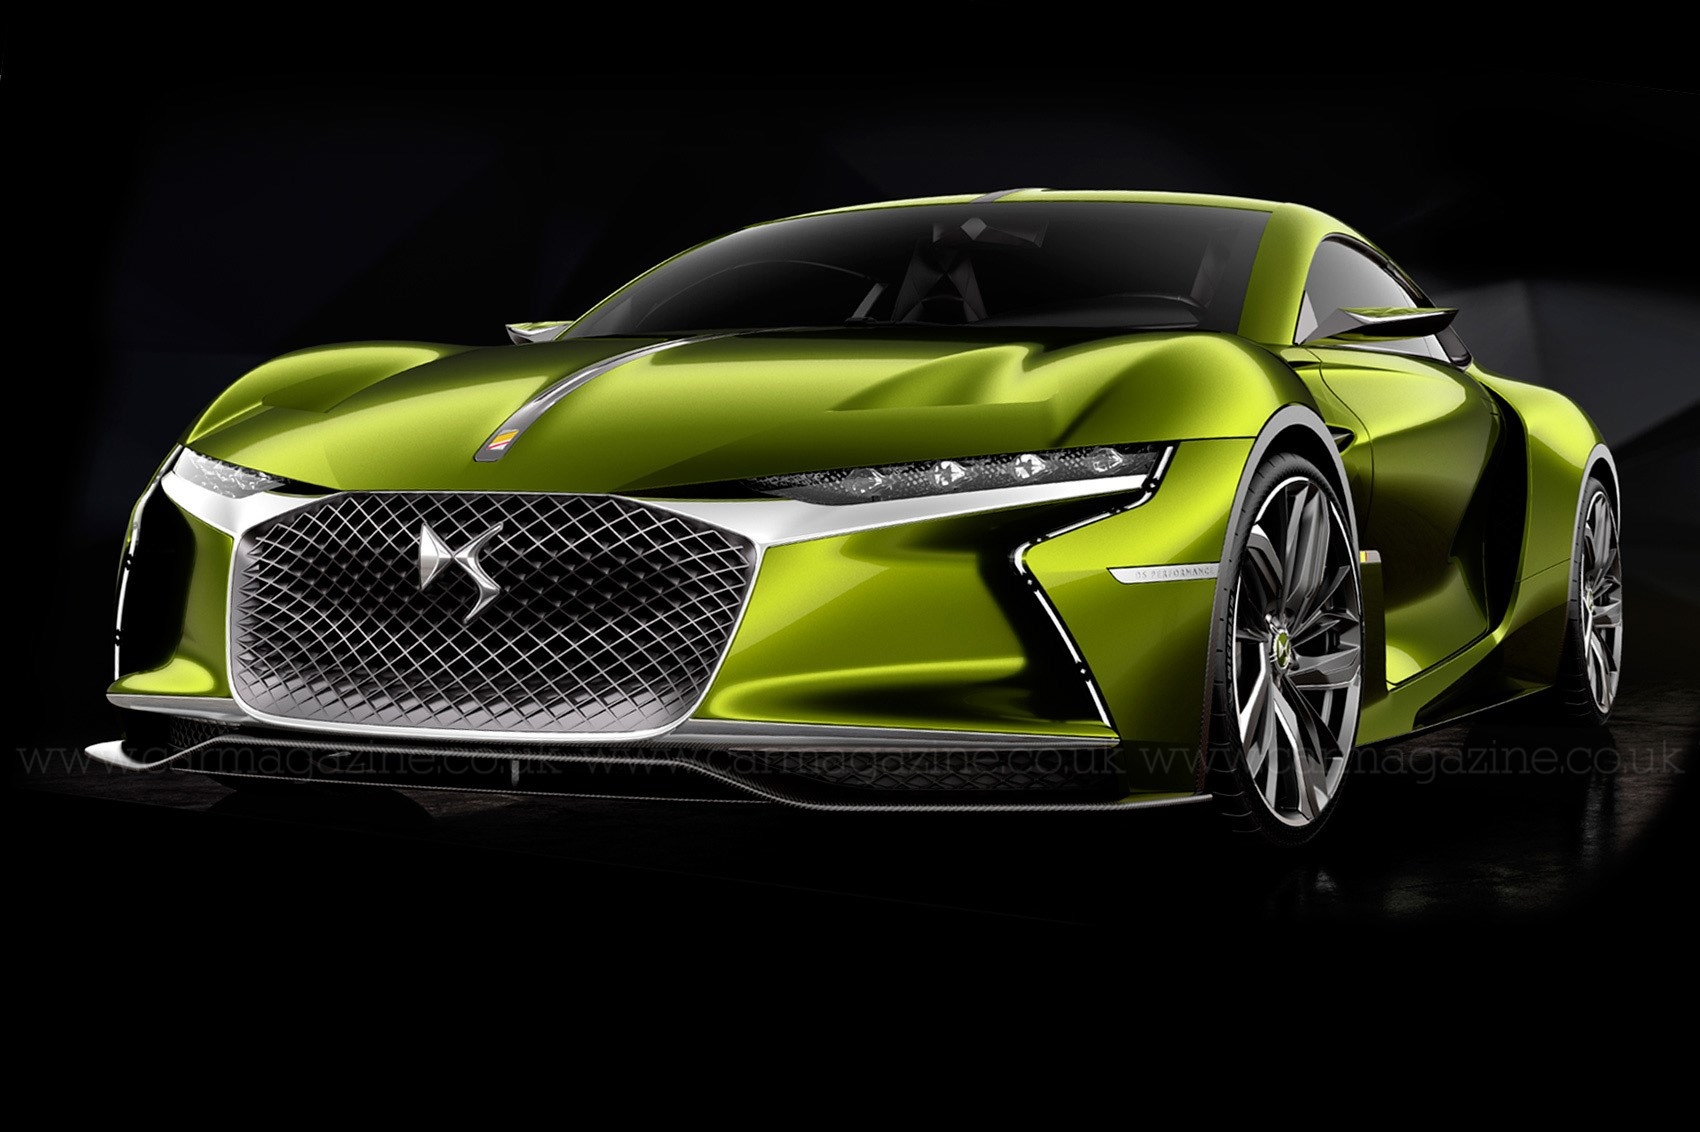 super charged ds e tense gt concept revealed by car magazine. Black Bedroom Furniture Sets. Home Design Ideas